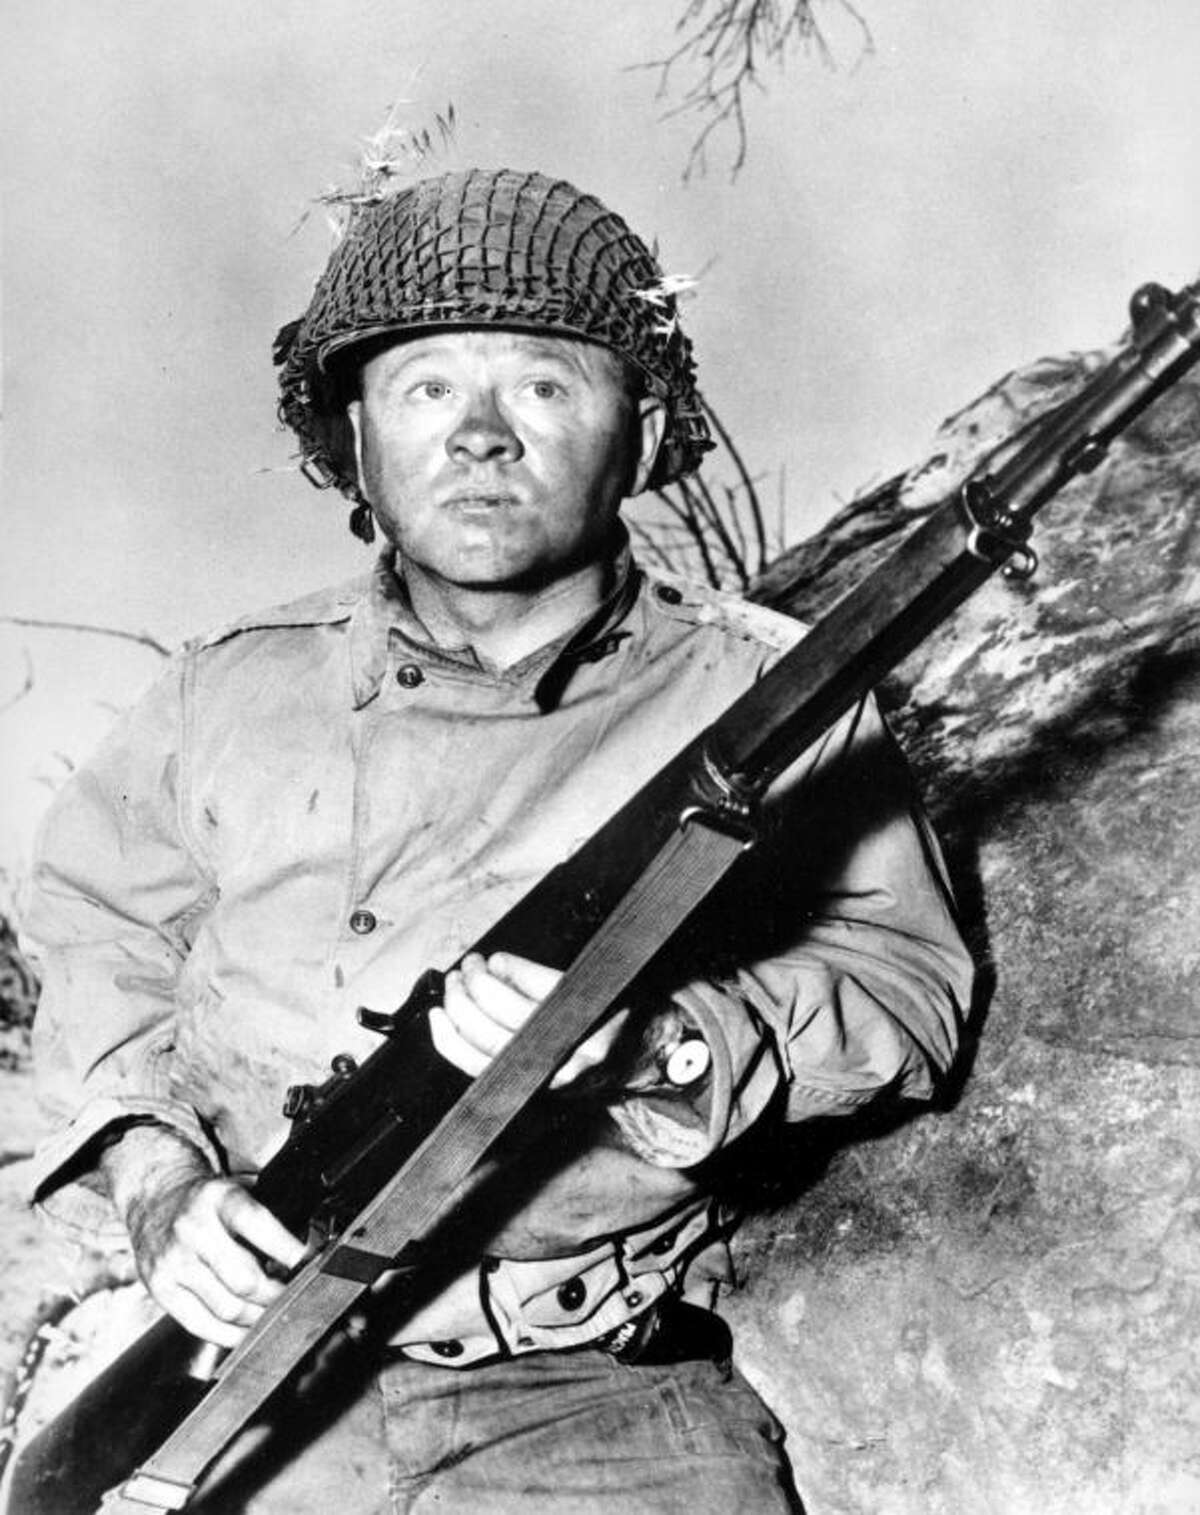 """FILE - Actor Mickey Rooney is shown in this file photo as G.I. Dooley in the 1956 Hollywood movie """"The Bold and the Brave."""" Rooney, a Hollywood legend whose career spanned more than 80 years, has died. He was 93. Los Angeles Police Commander Andrew Smith said that Rooney was with his family when he died Sunday, April 6, 2014, at his North Hollywood home. (AP Photo/File)"""